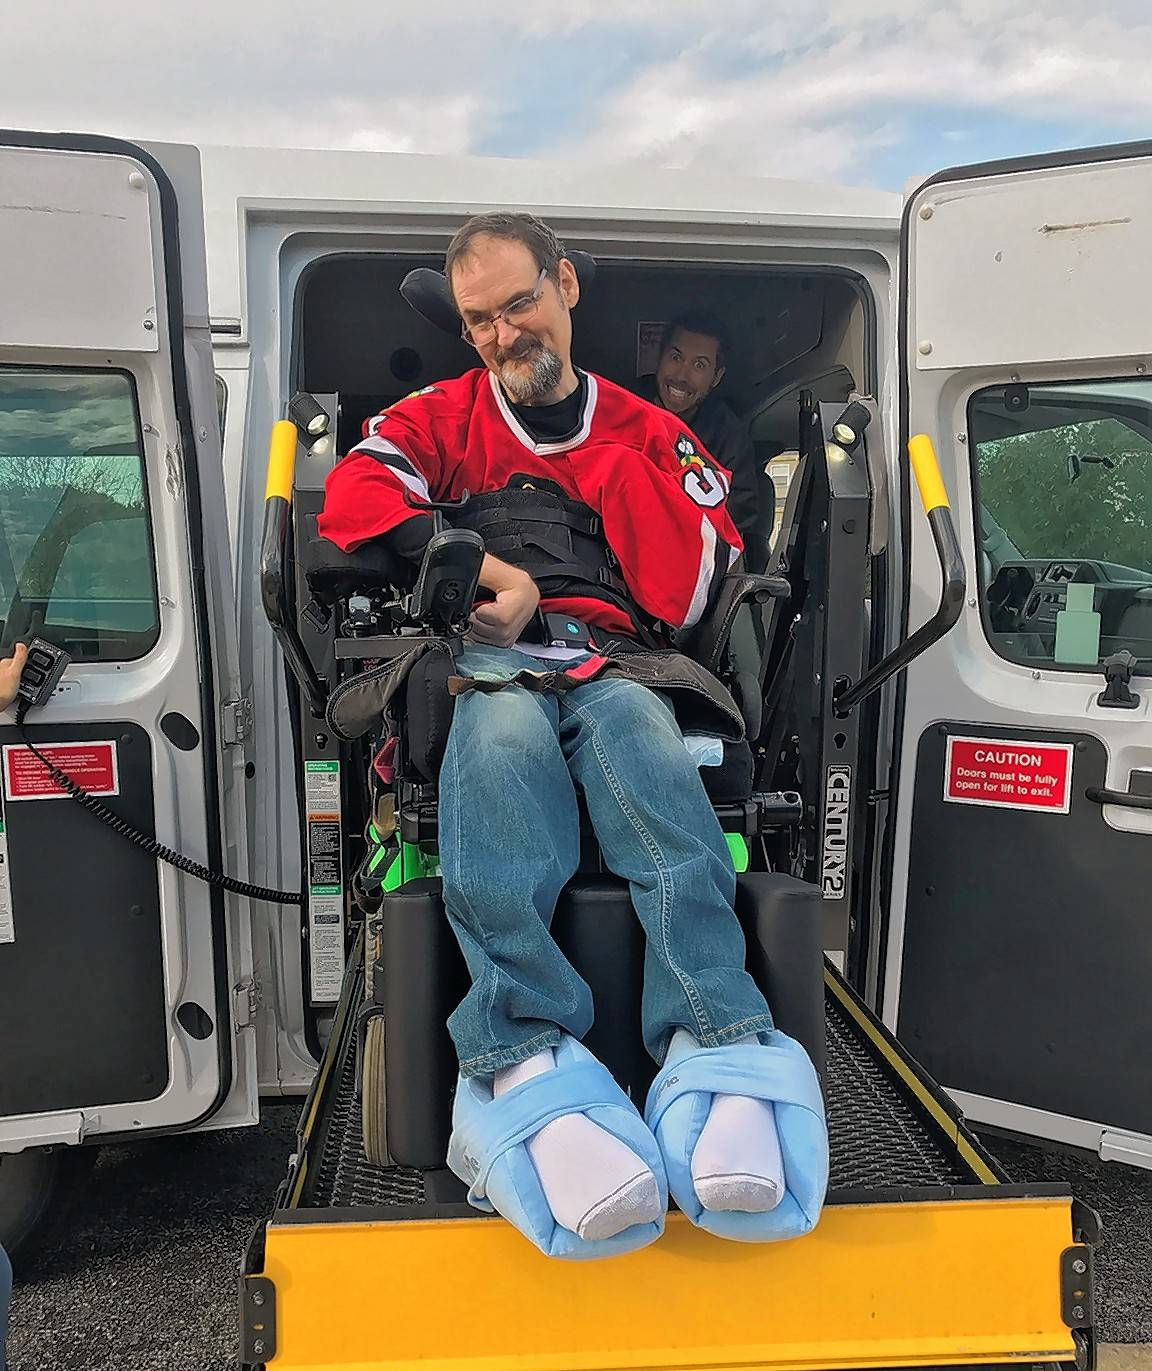 Marklund client Phil gets ready for a ride to the Blackhawks game, with assistance from Marklund's maintenance technician Paul Rogers.